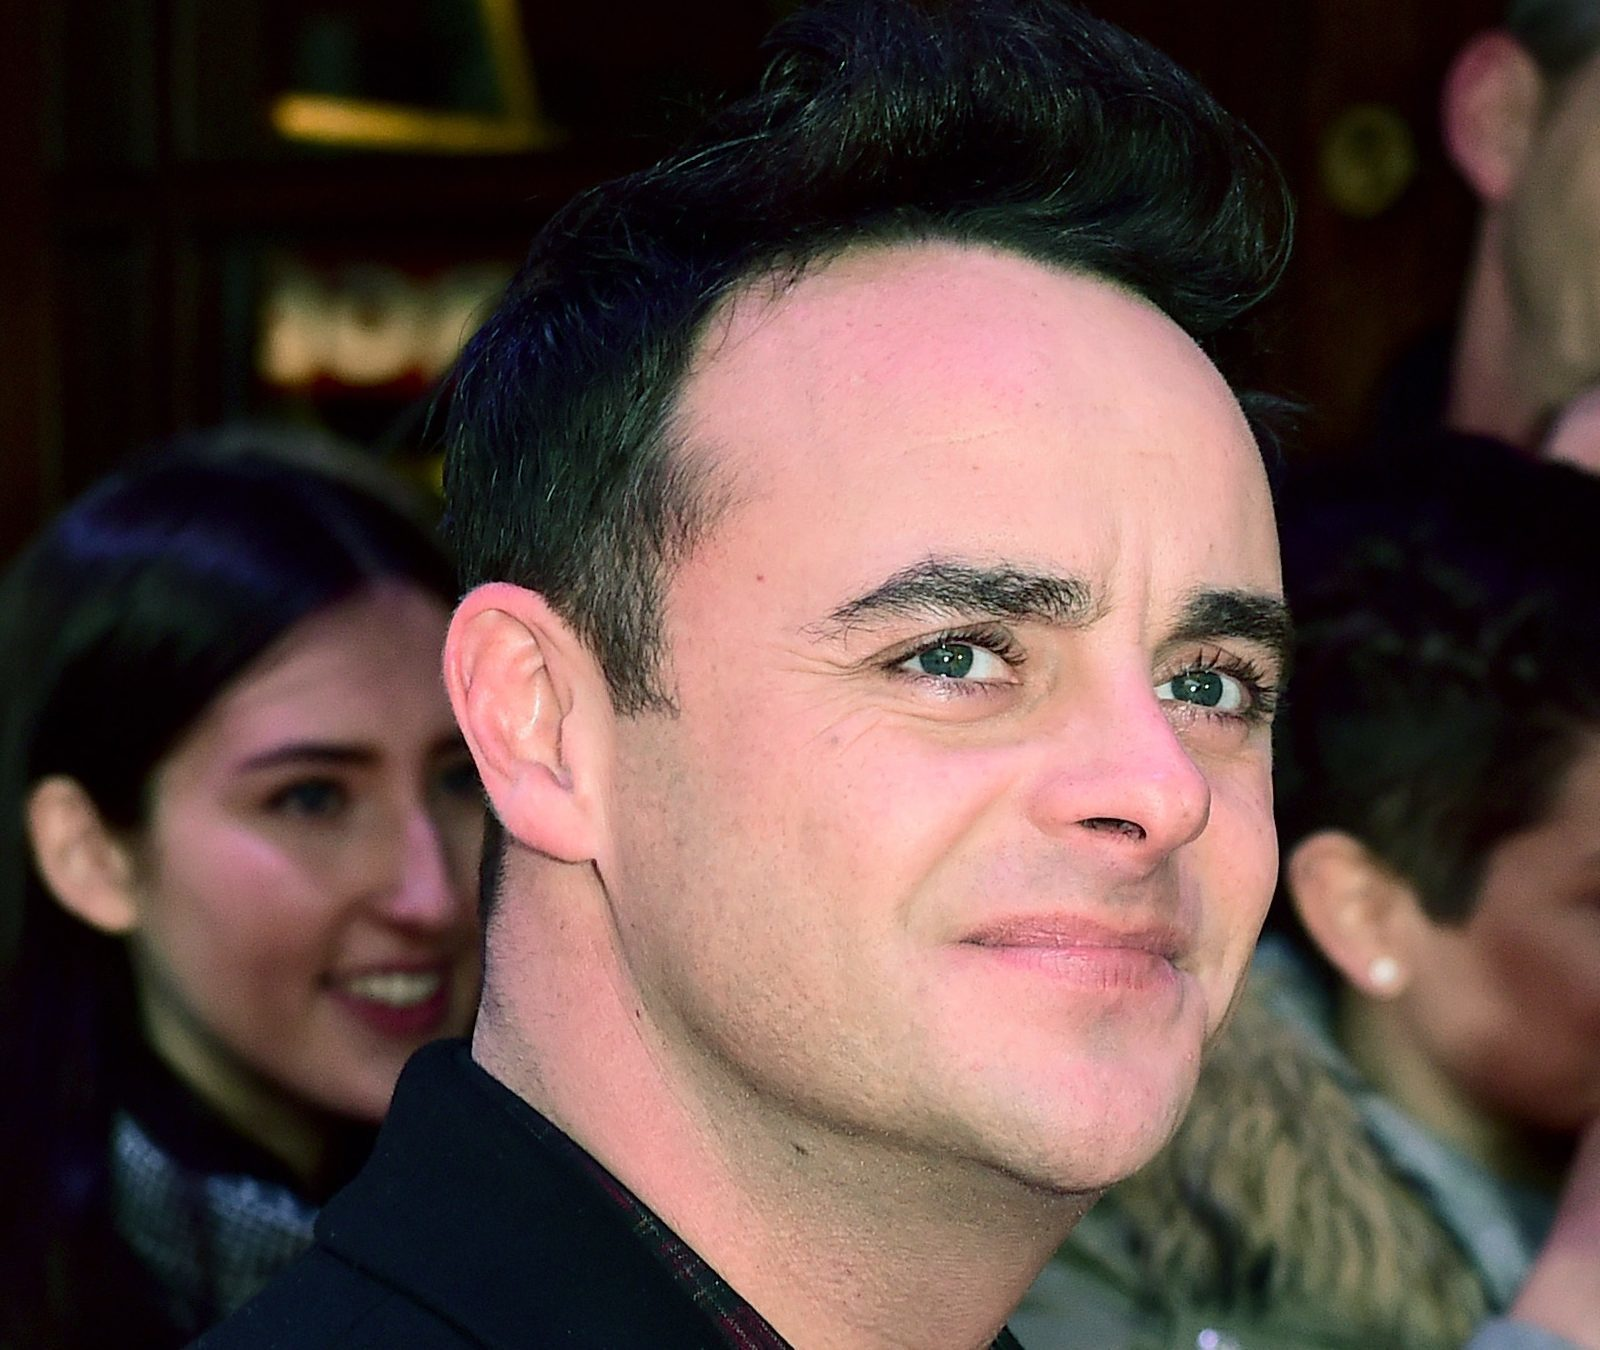 The TV star, one half of presenting duo Ant and Dec, said he wanted to speak out about his issues in order to help others. (Ian West/PA Wire)